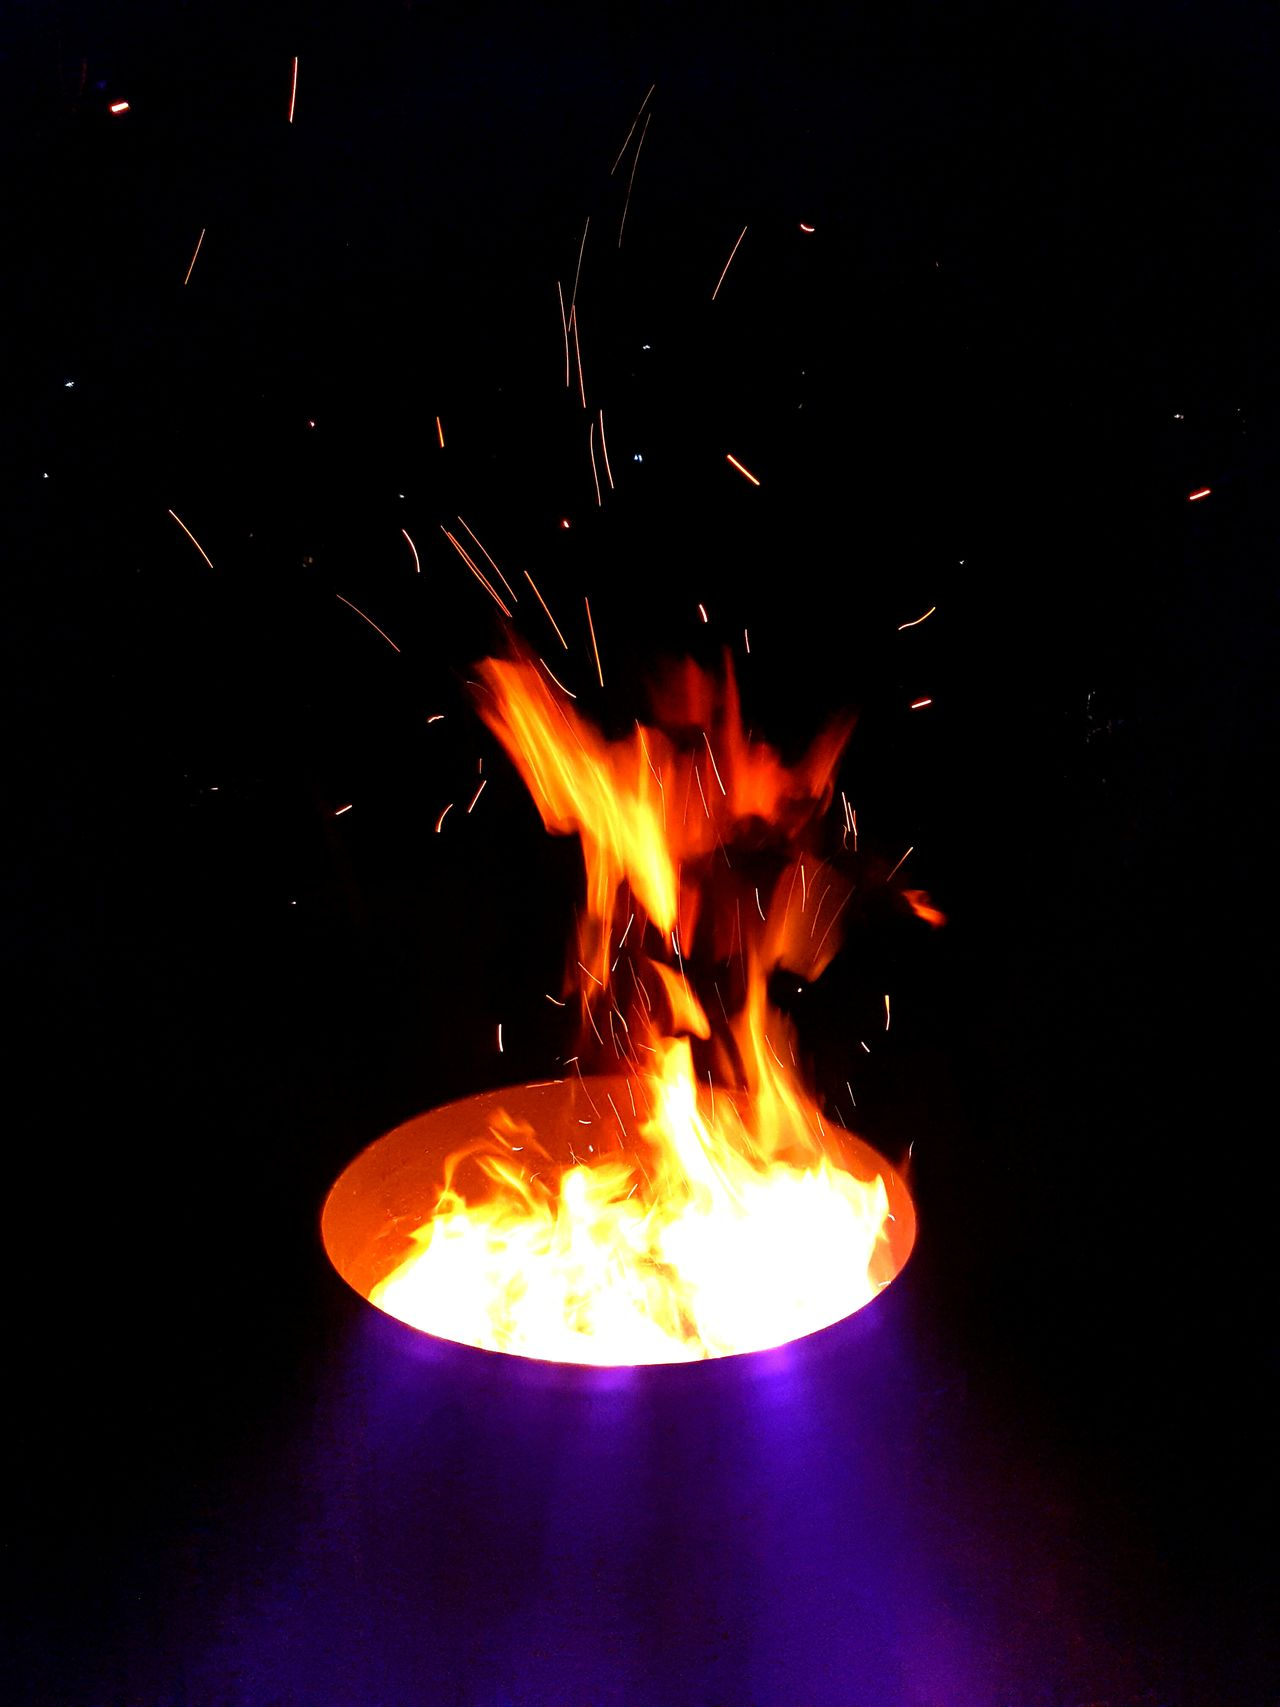 Heat - Temperature Motion Flame Burning Splashing Drop Igniting Science Exploding Smoke - Physical Structure Fossil Fuel No People Nature Particle Gas Space Astronomy